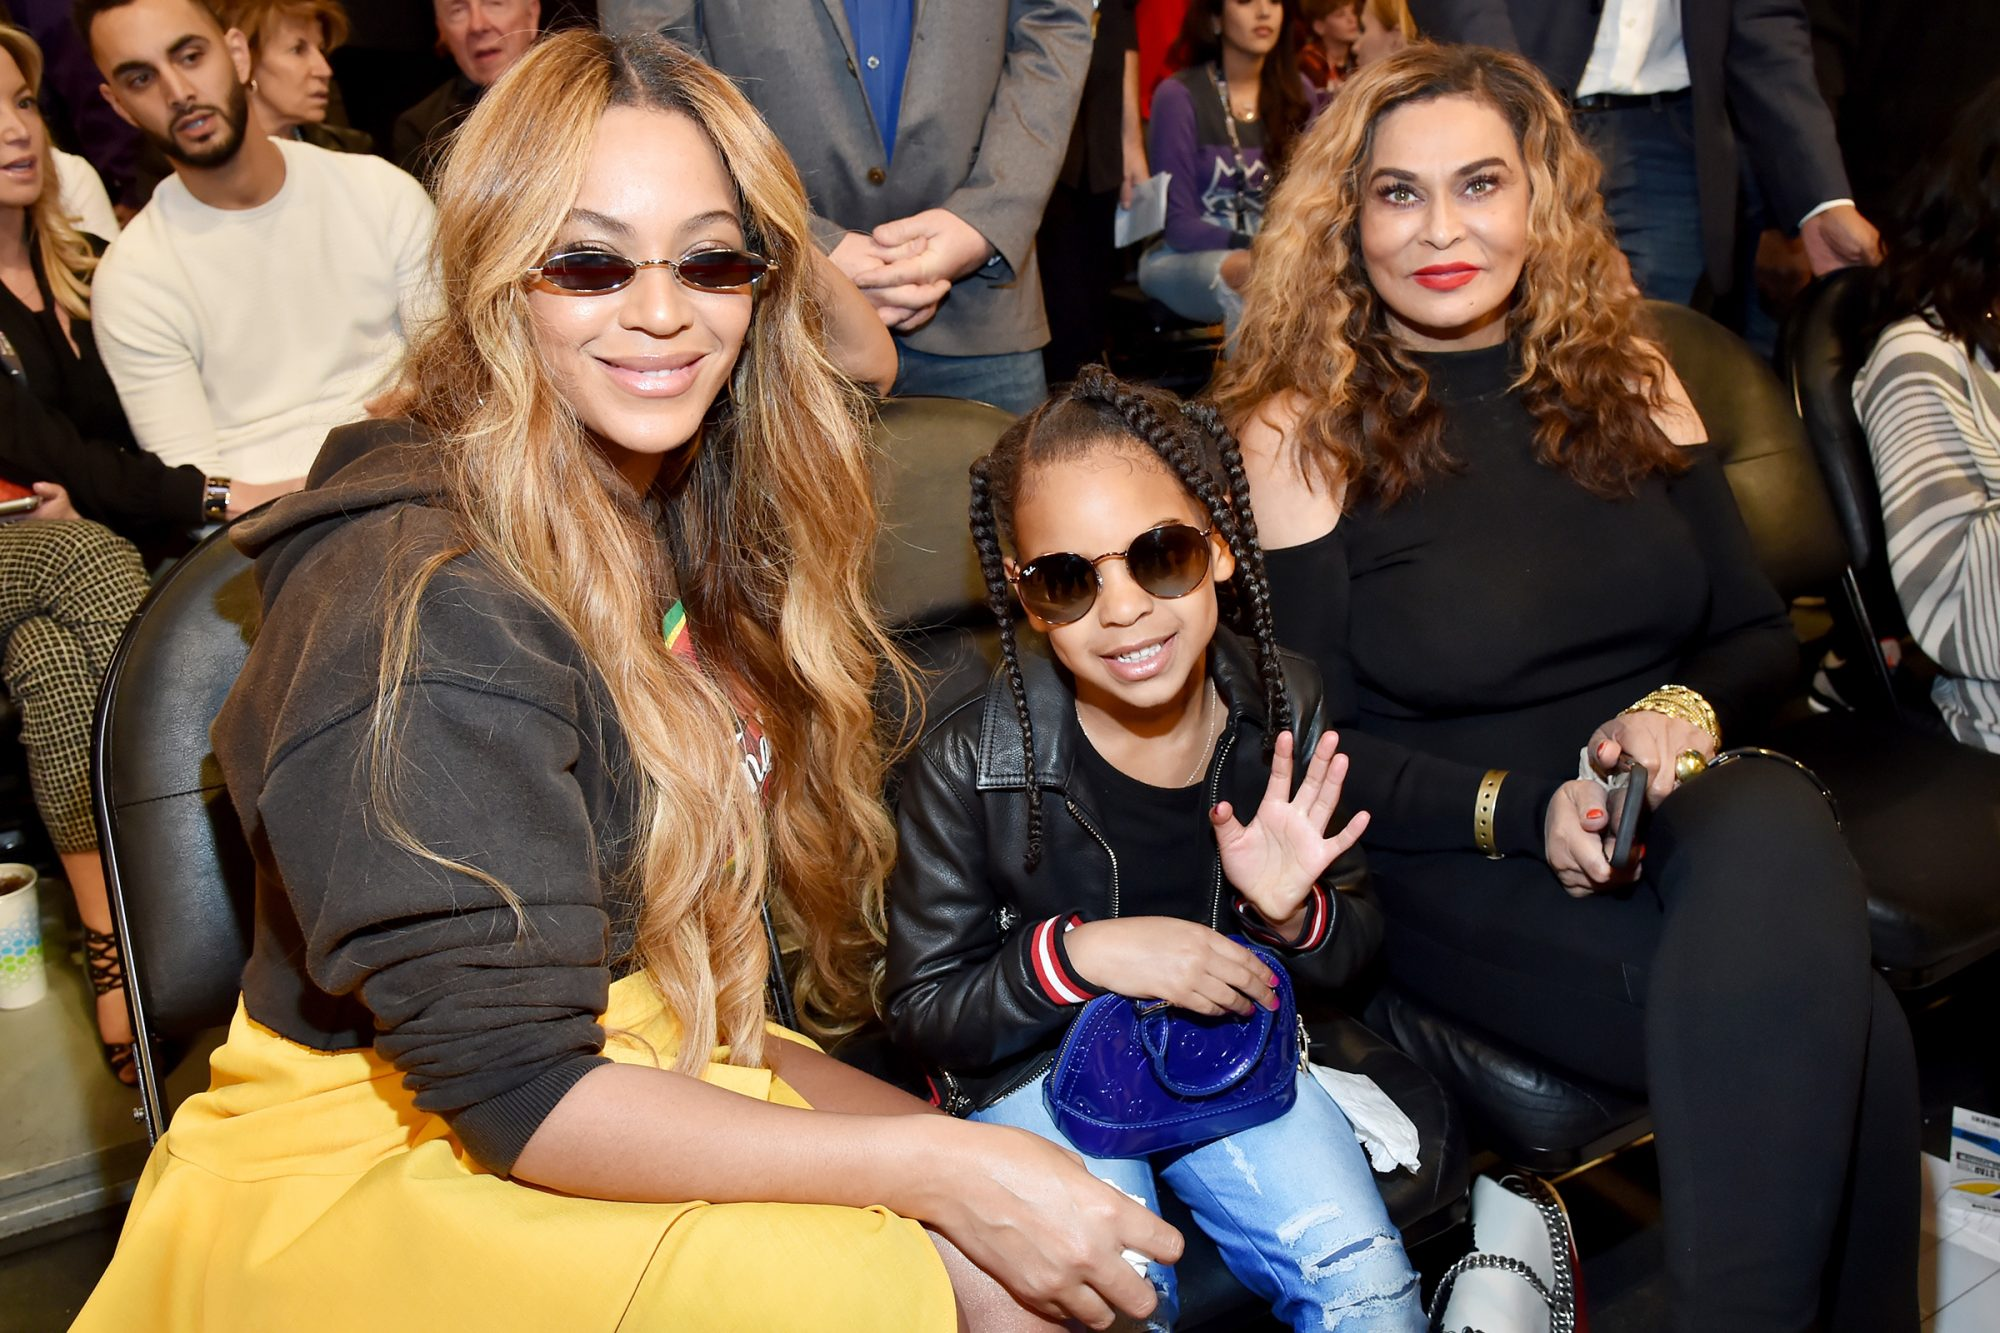 Beyonce, Blue Ivy Carter, and Tina Knowles